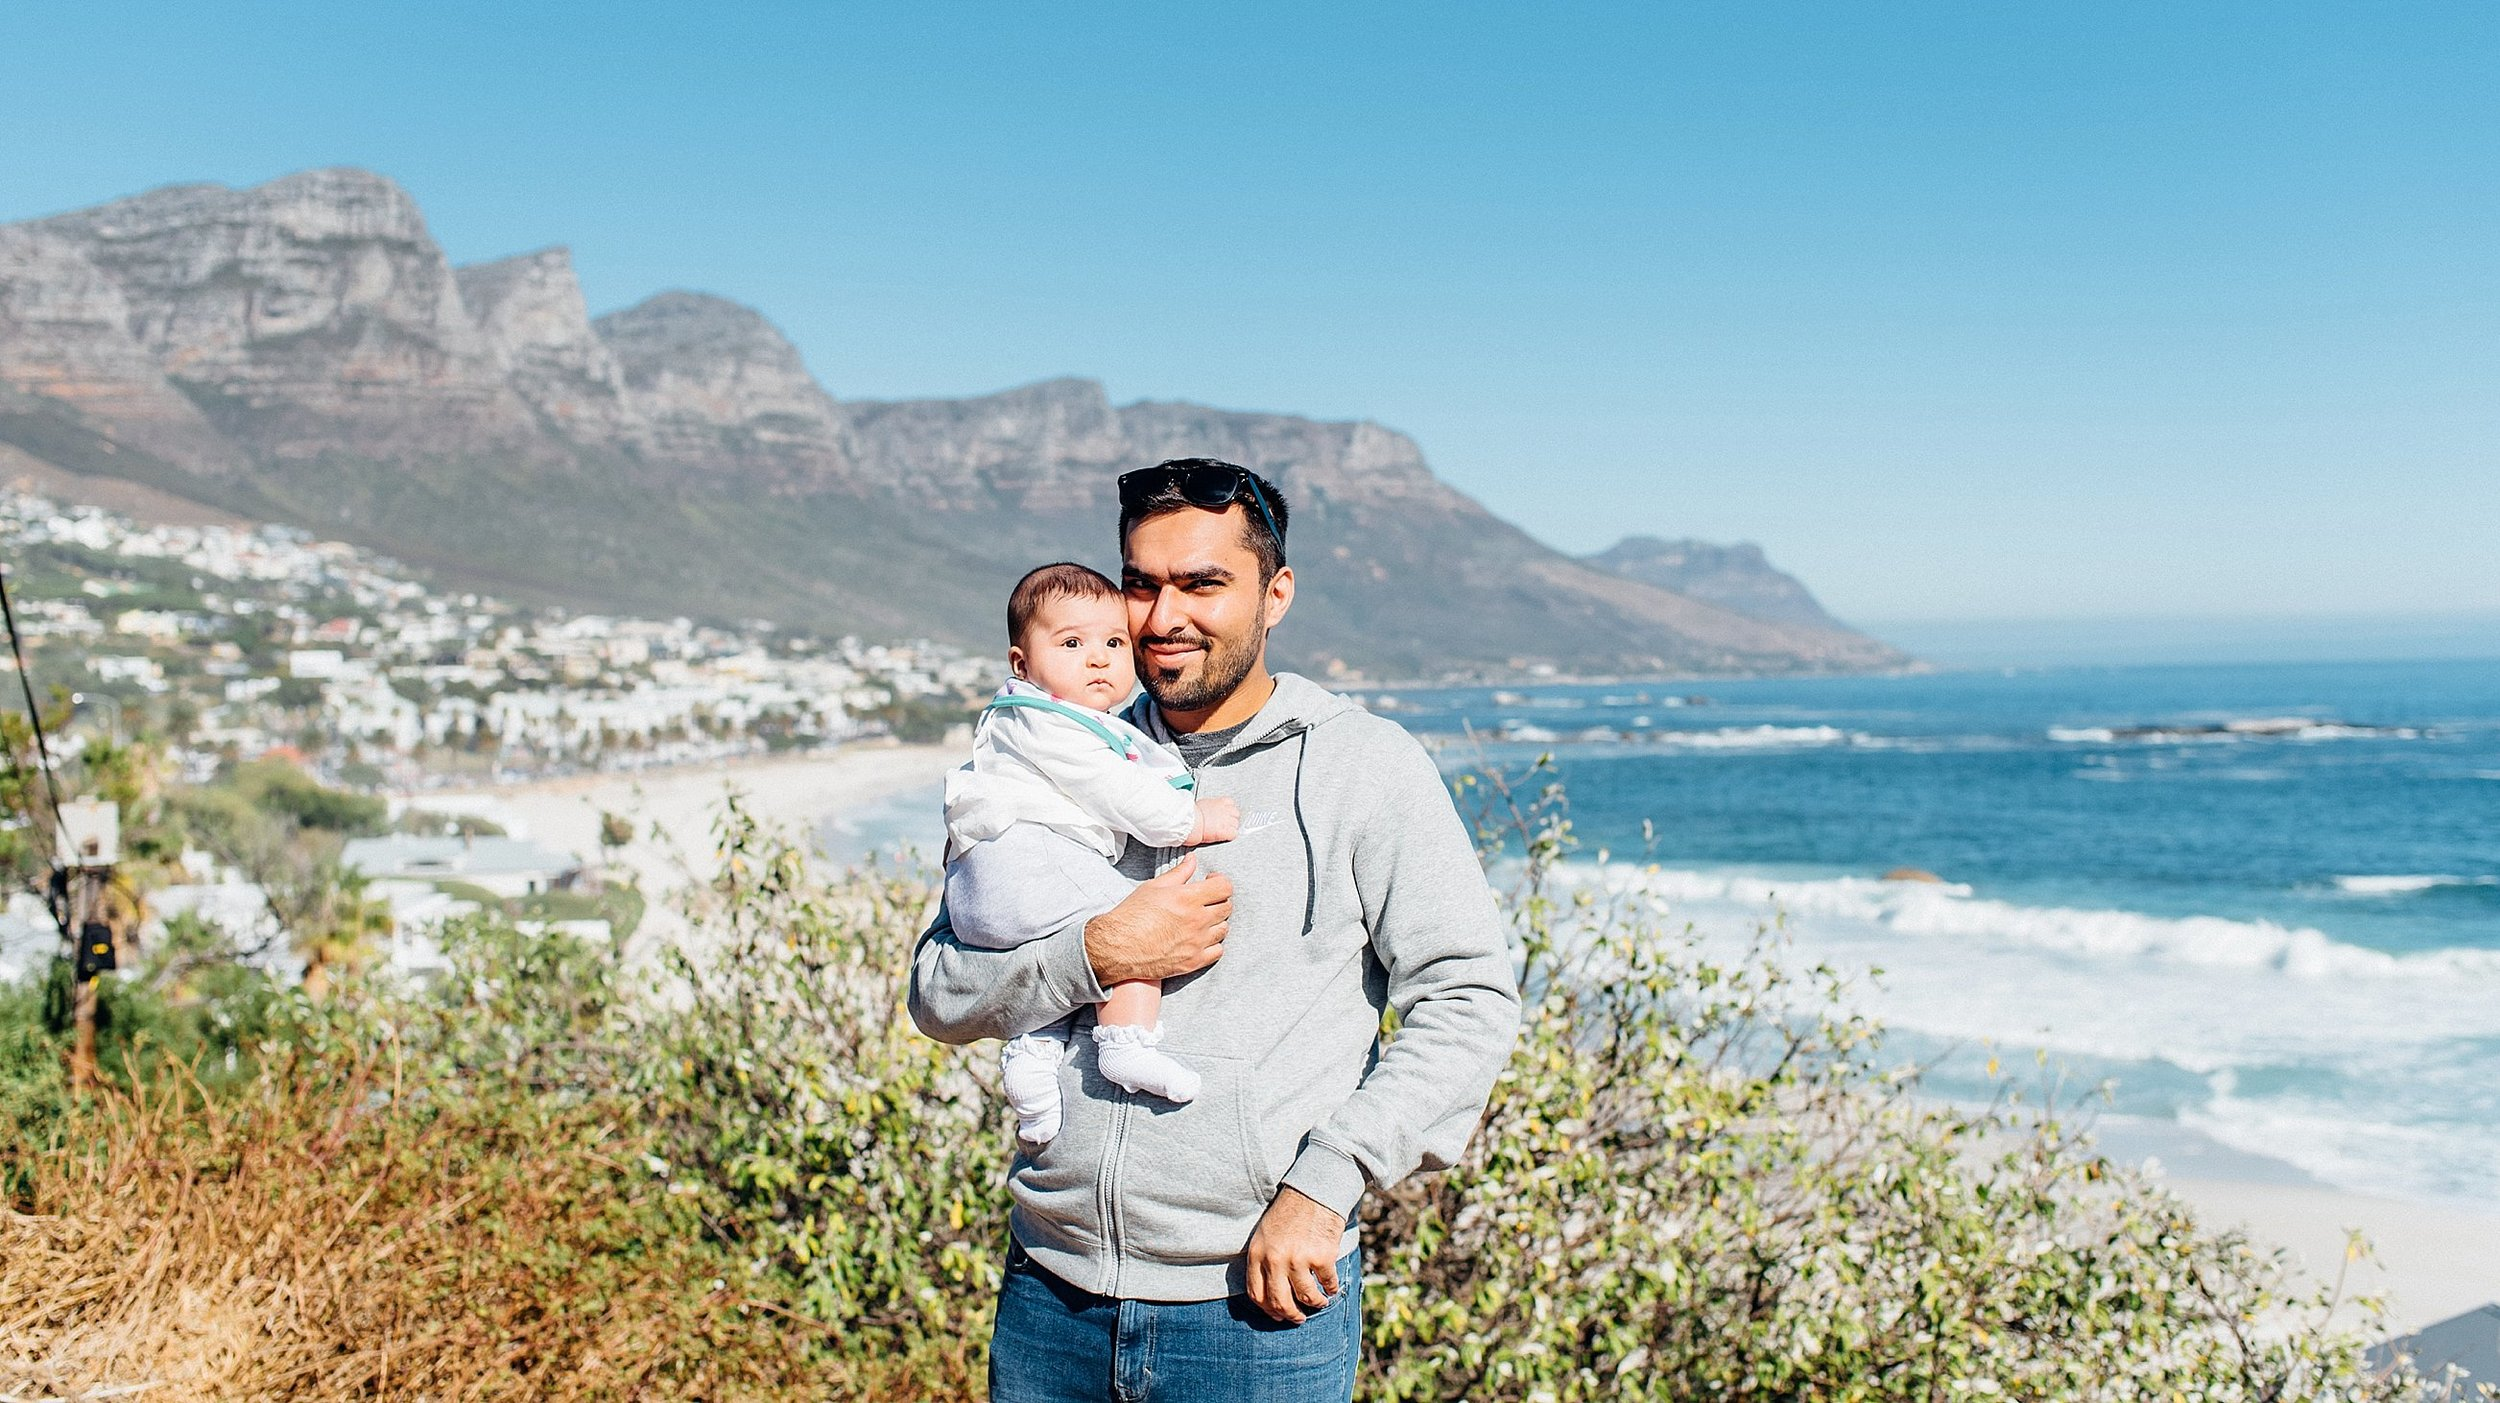 Cape Town, South Africa Travels Day 1 - BLOG - Ali and Batoul Photography-4.jpg